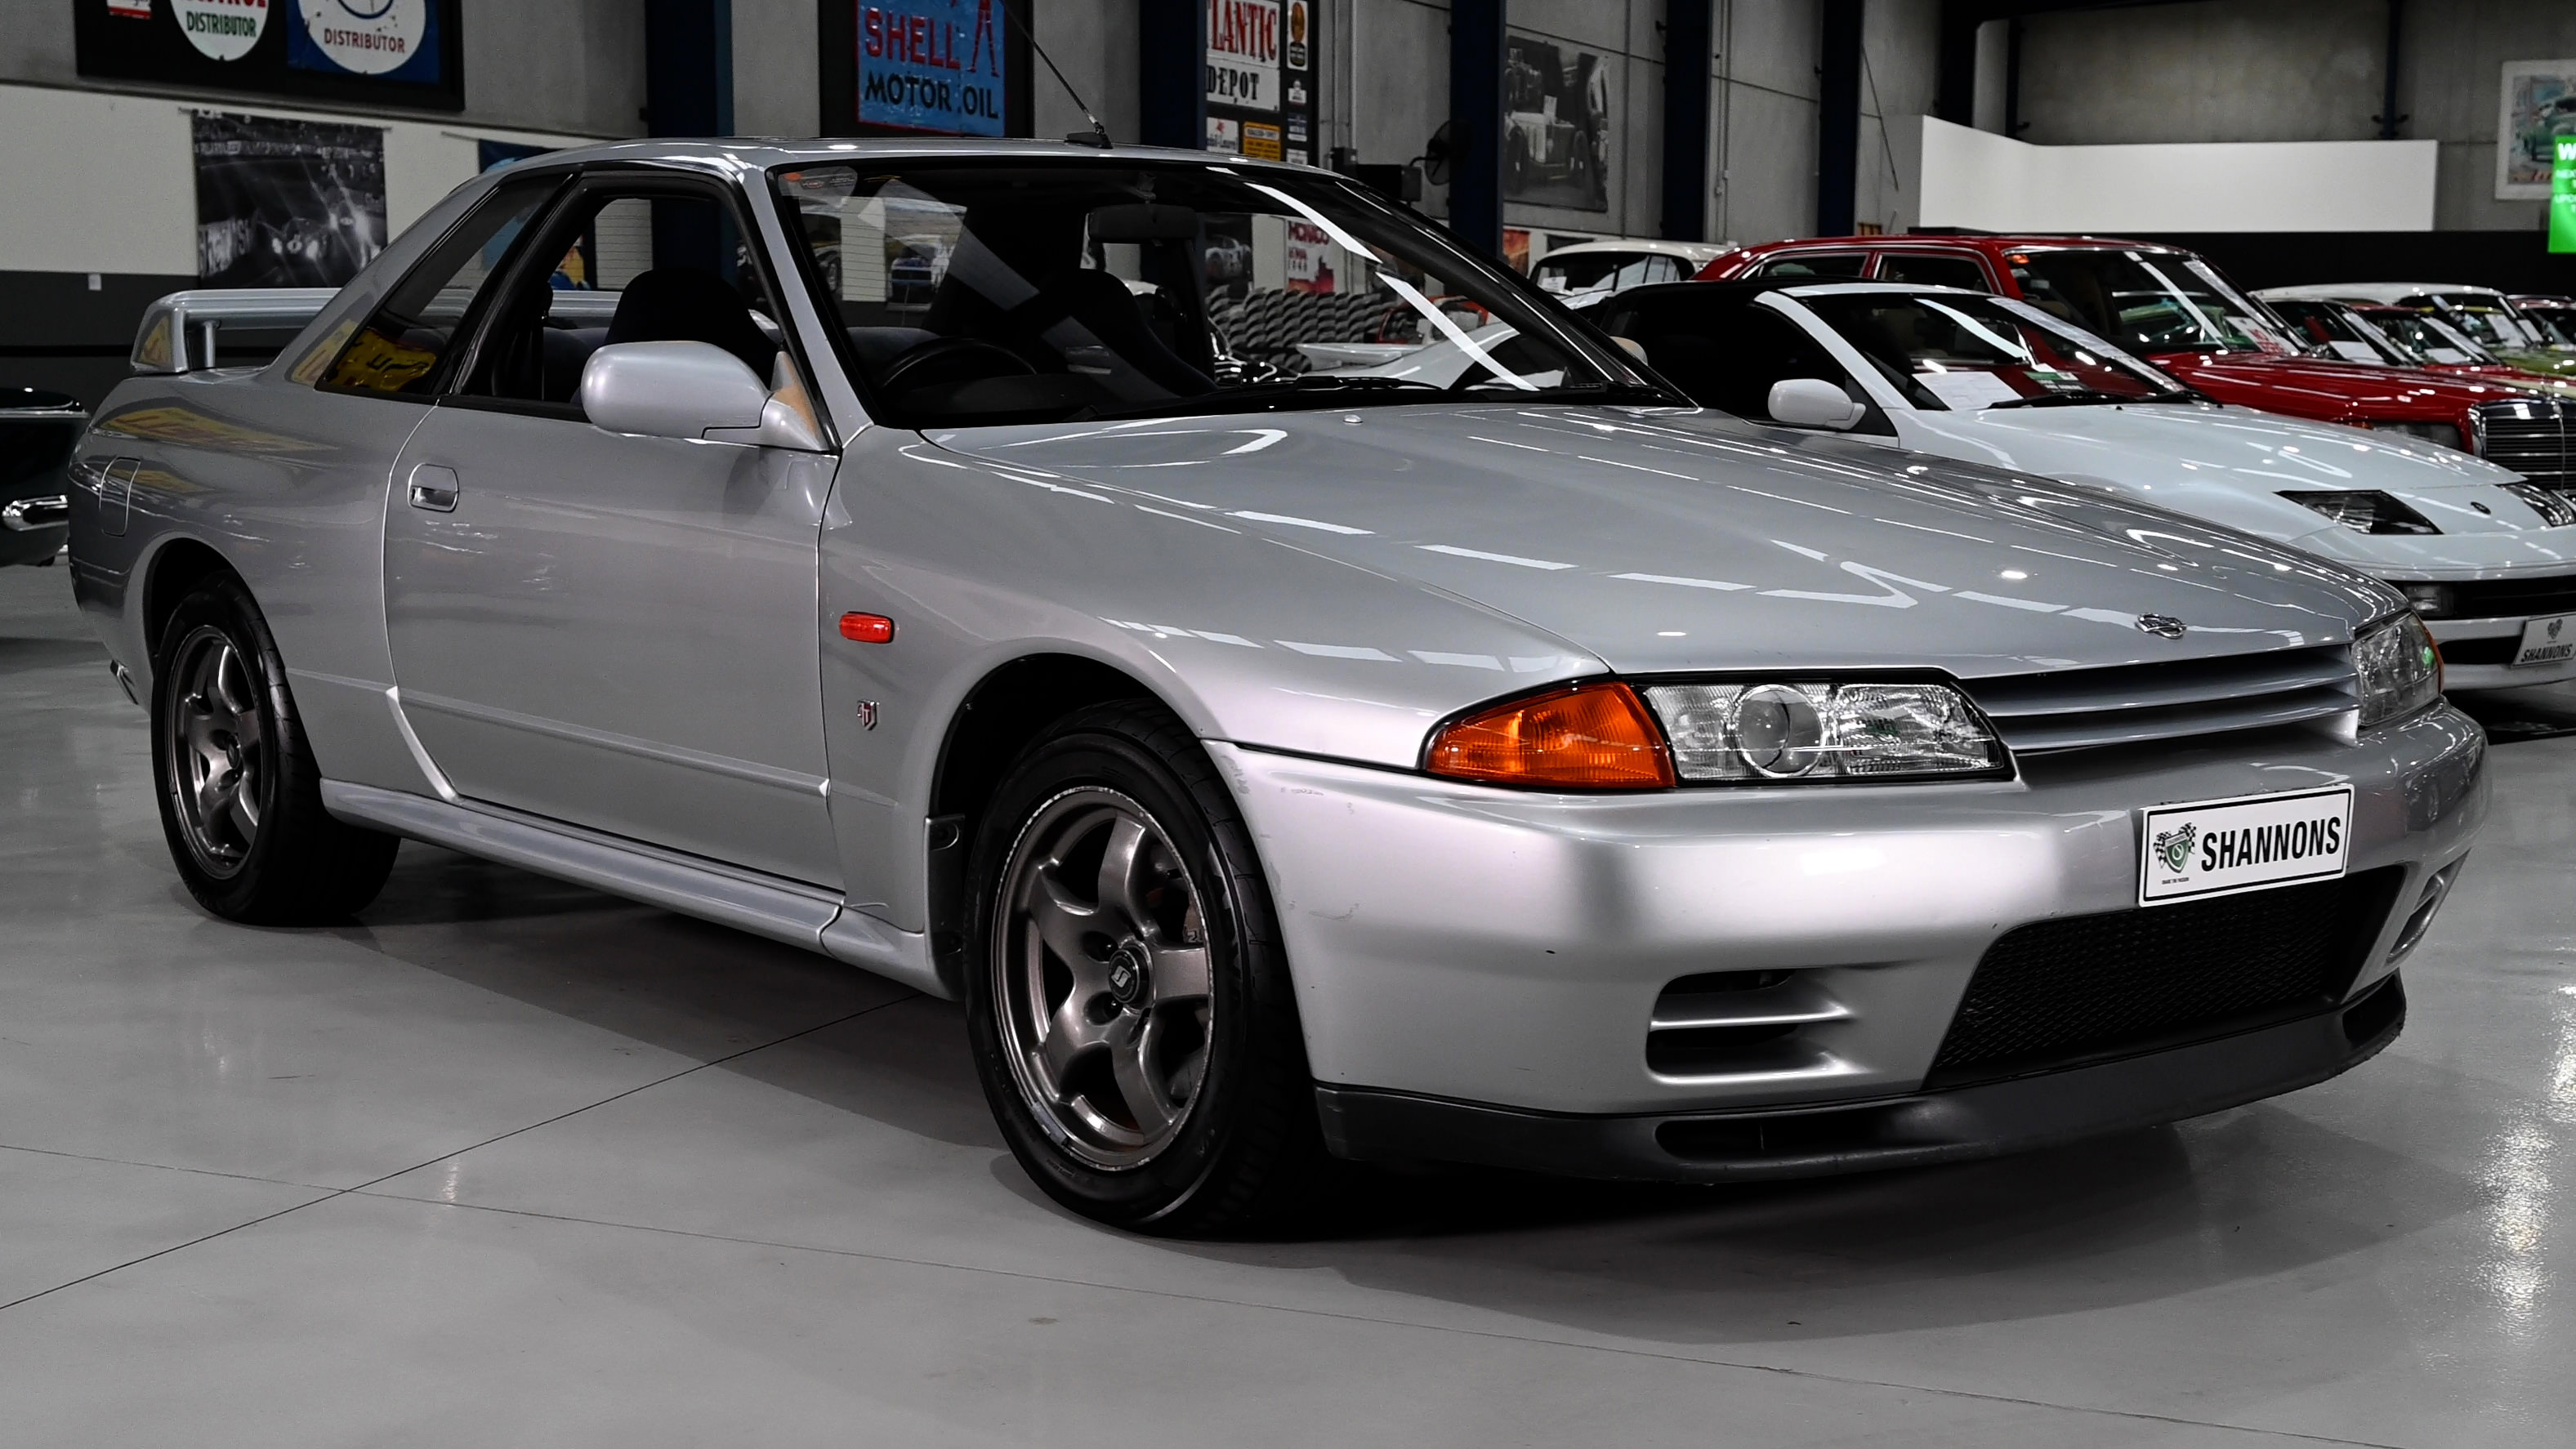 1991 Nissan Skyline R32 GT-R Coupe - 2021 Shannons Spring Timed Online Auction